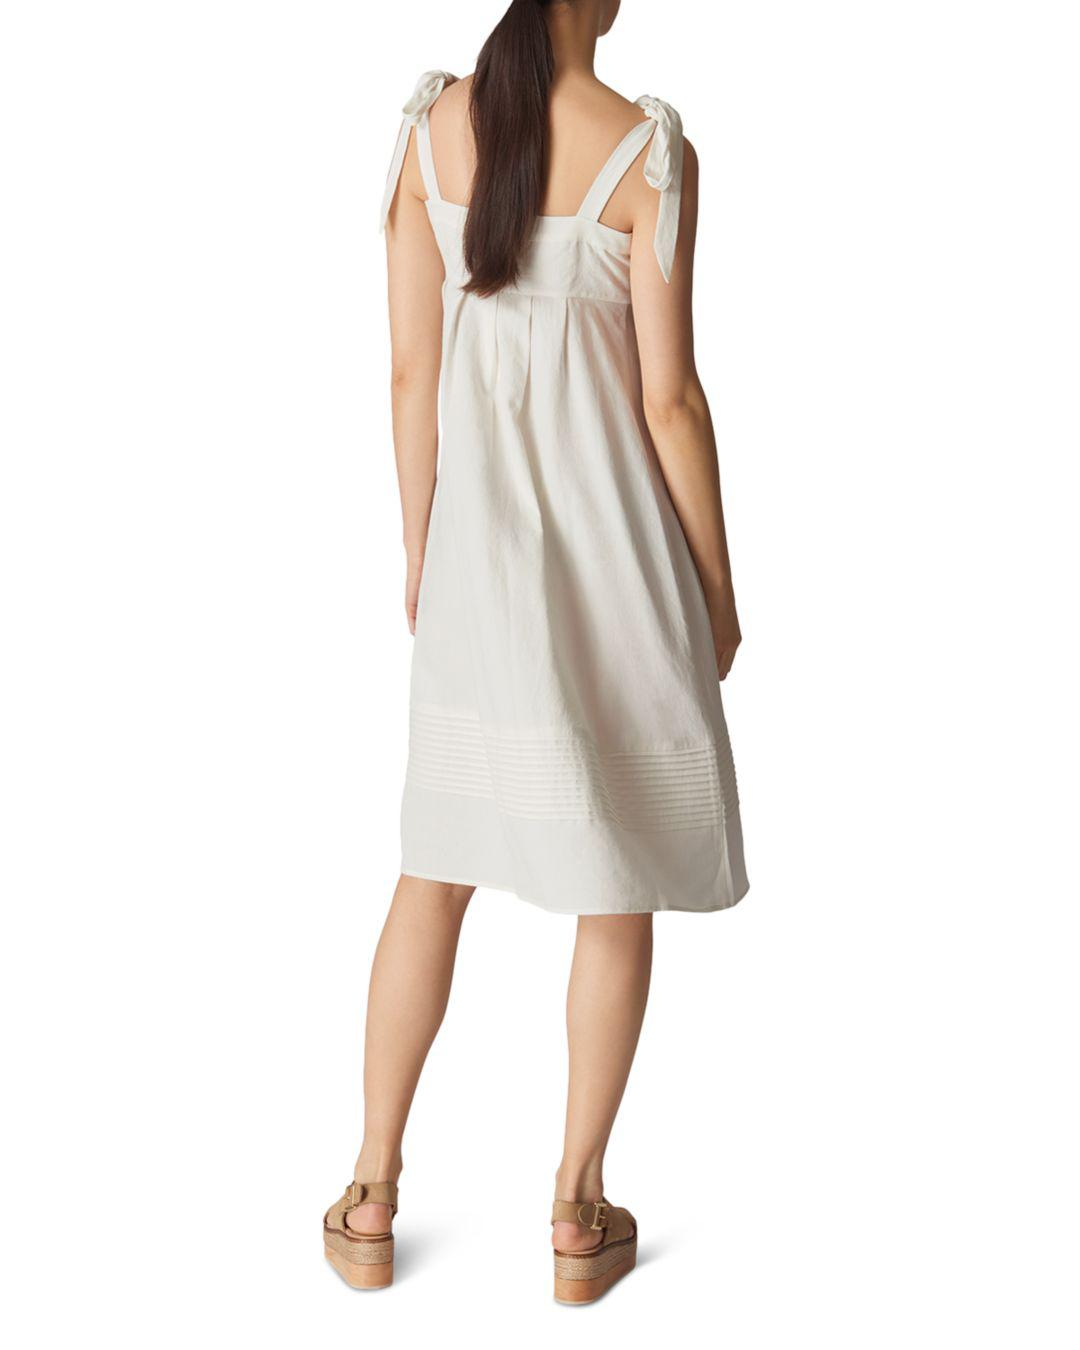 772b965225 Gallery. Previously sold at  Bloomingdale s · Women s White Linen Dresses  ...